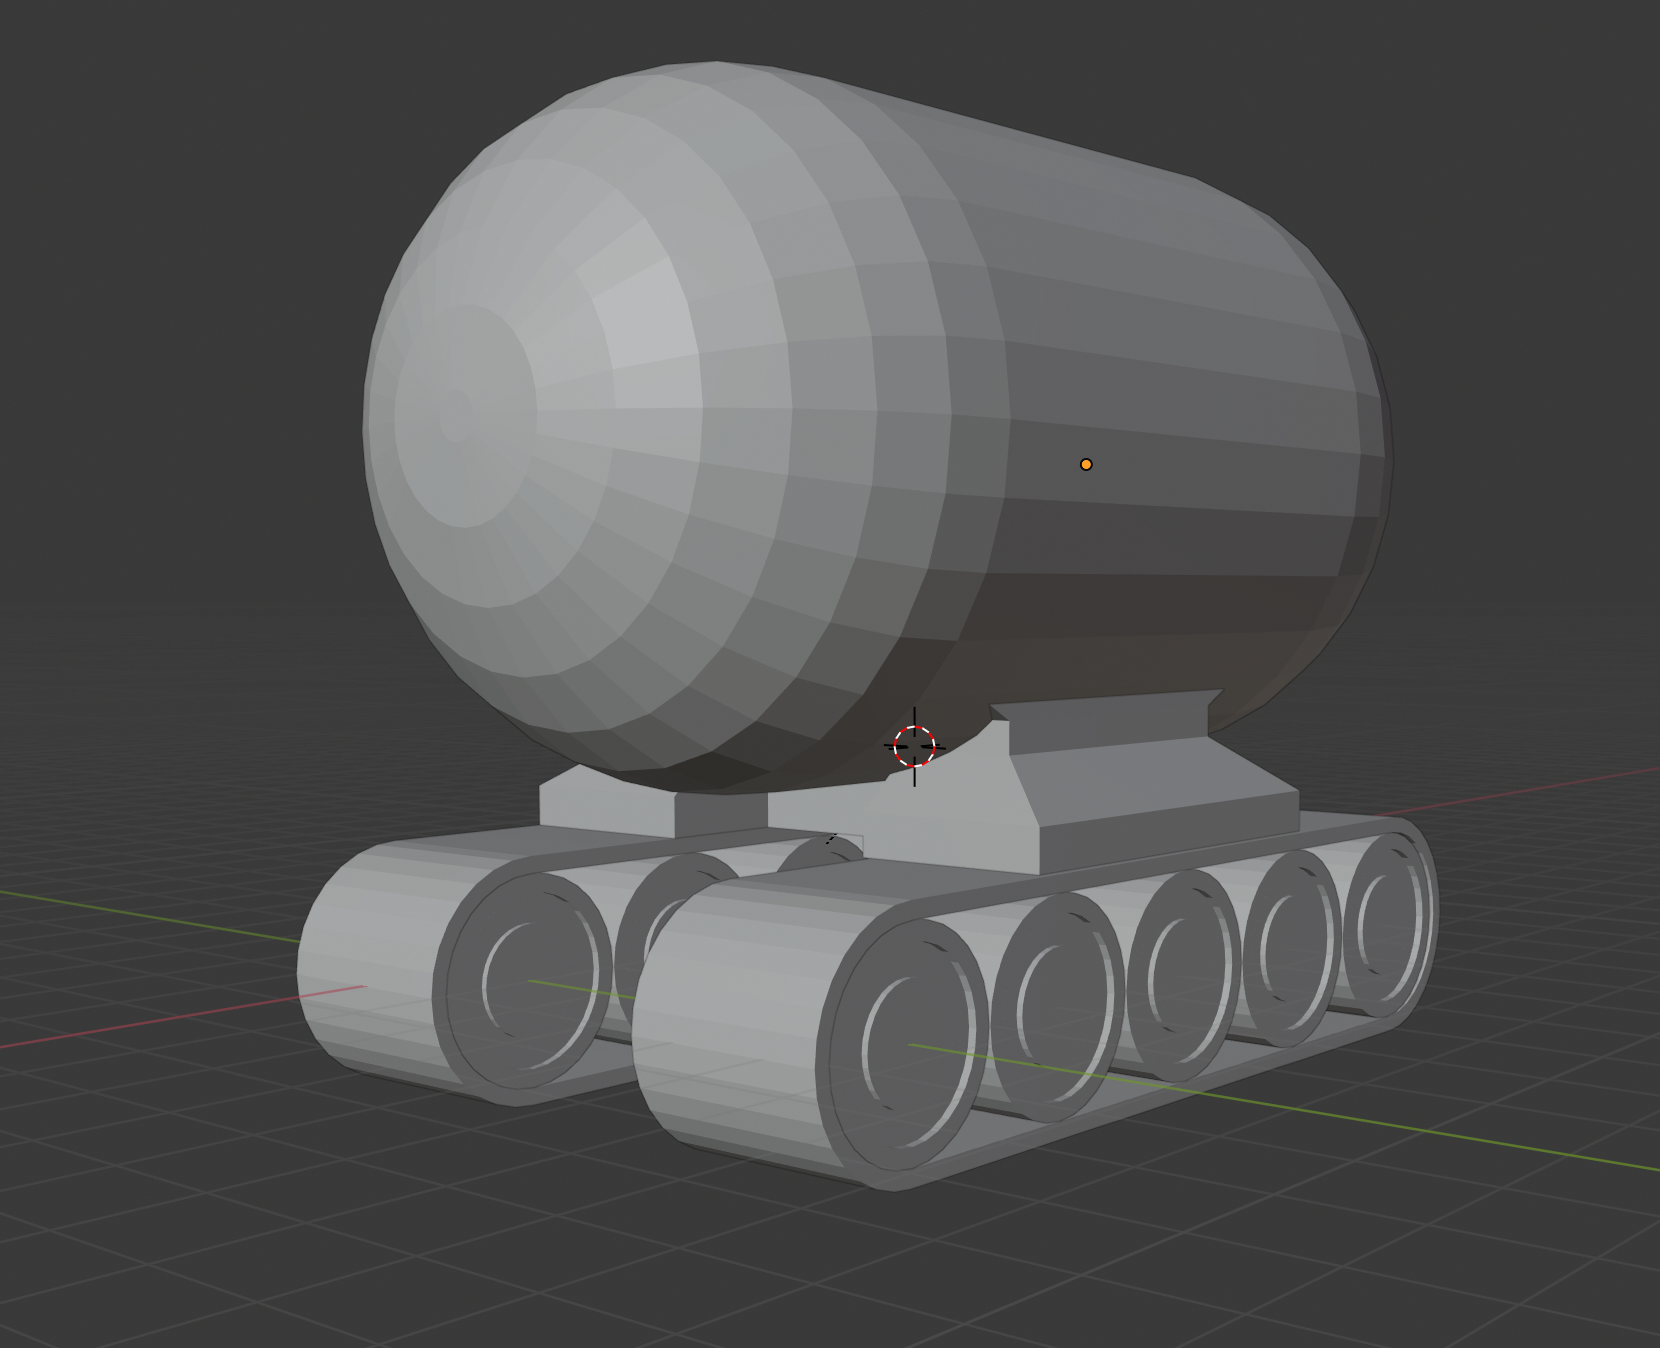 Space Rover 2020 Challenge - Jay Padhya